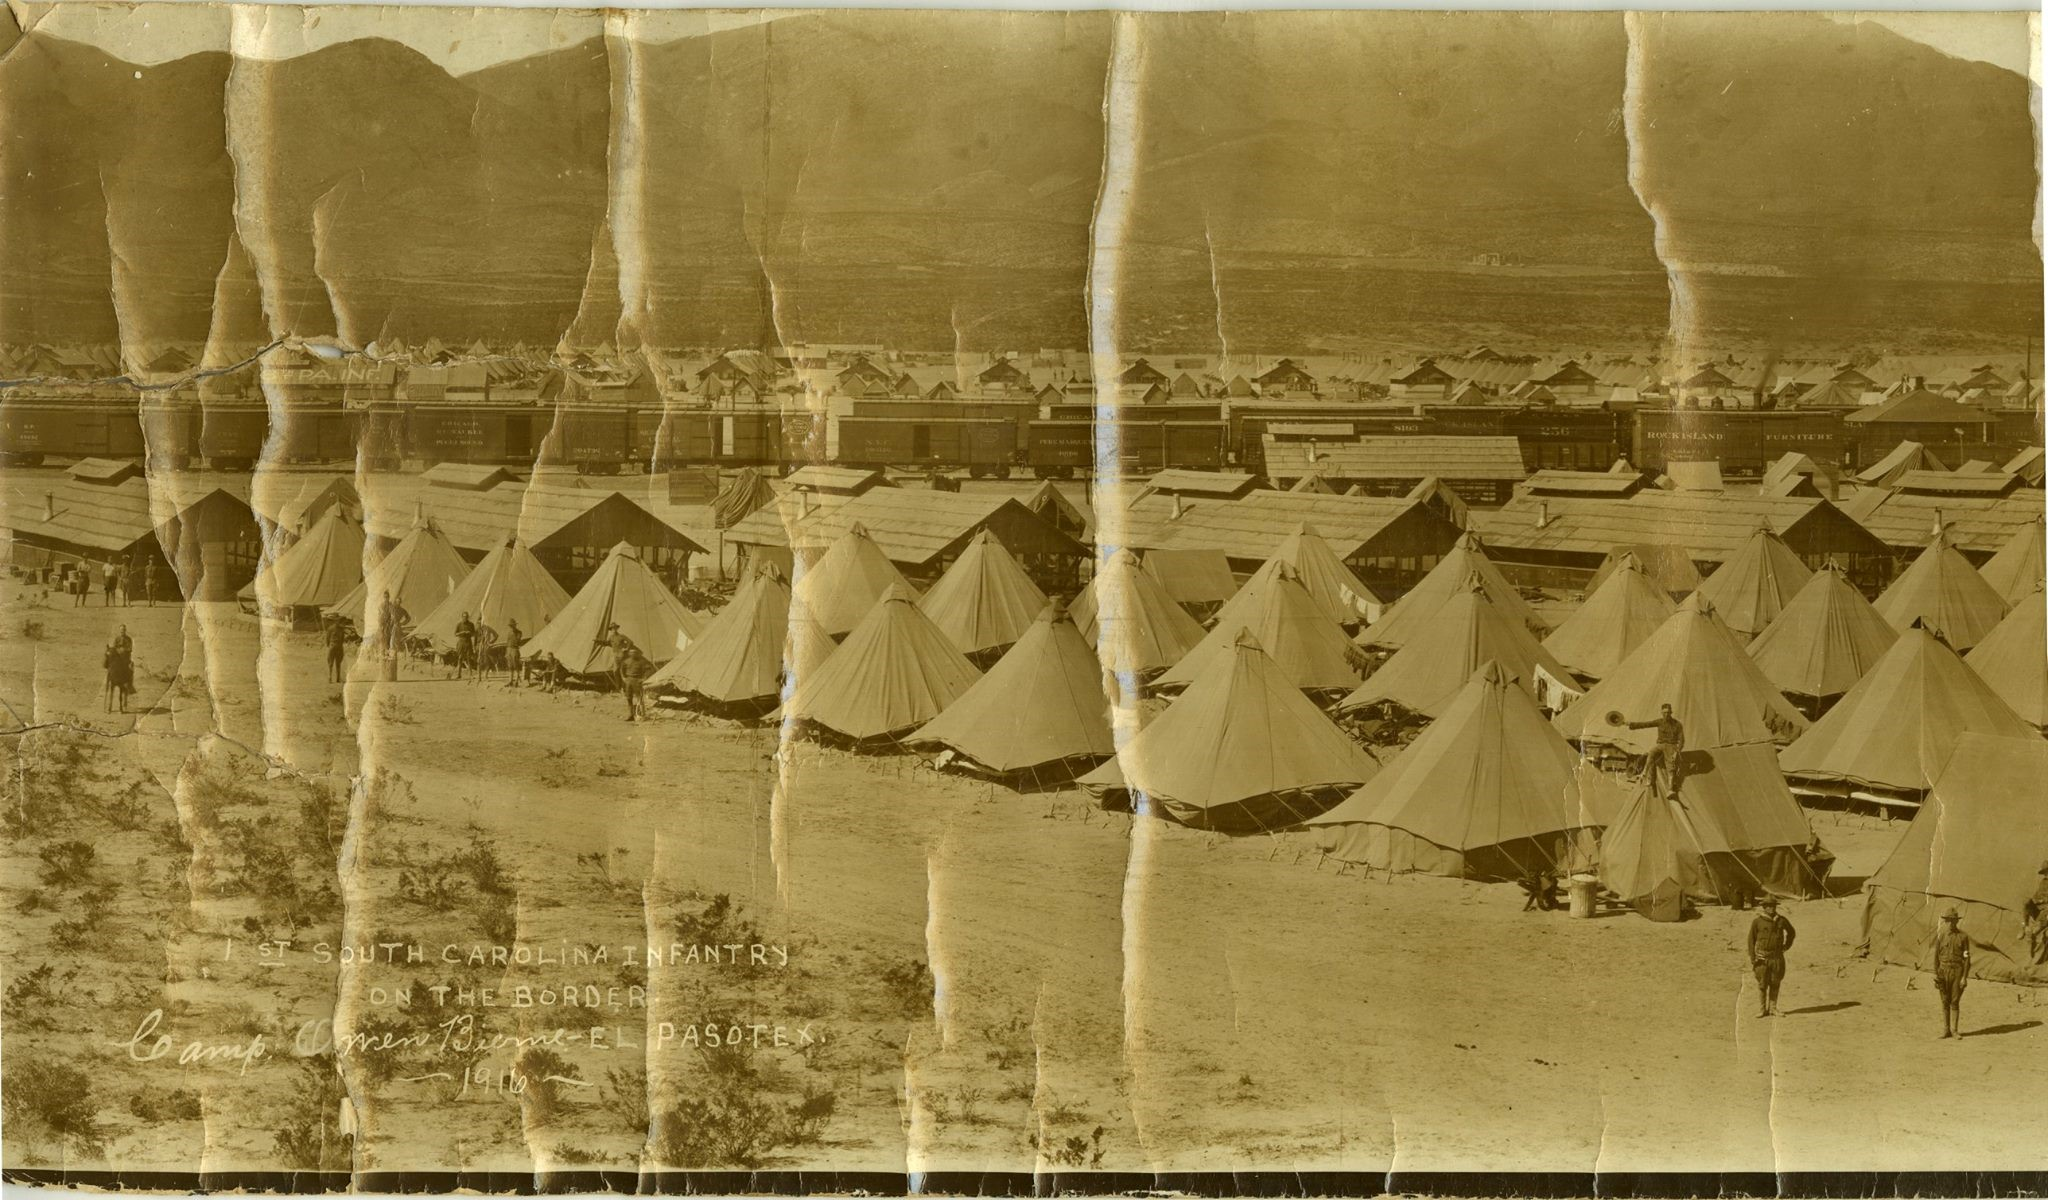 1st South Carolina Infantry, ca. 1916 at Camp Owen Bierne, El Paso, Texas, courtesy of SC Dept. of Archives and History